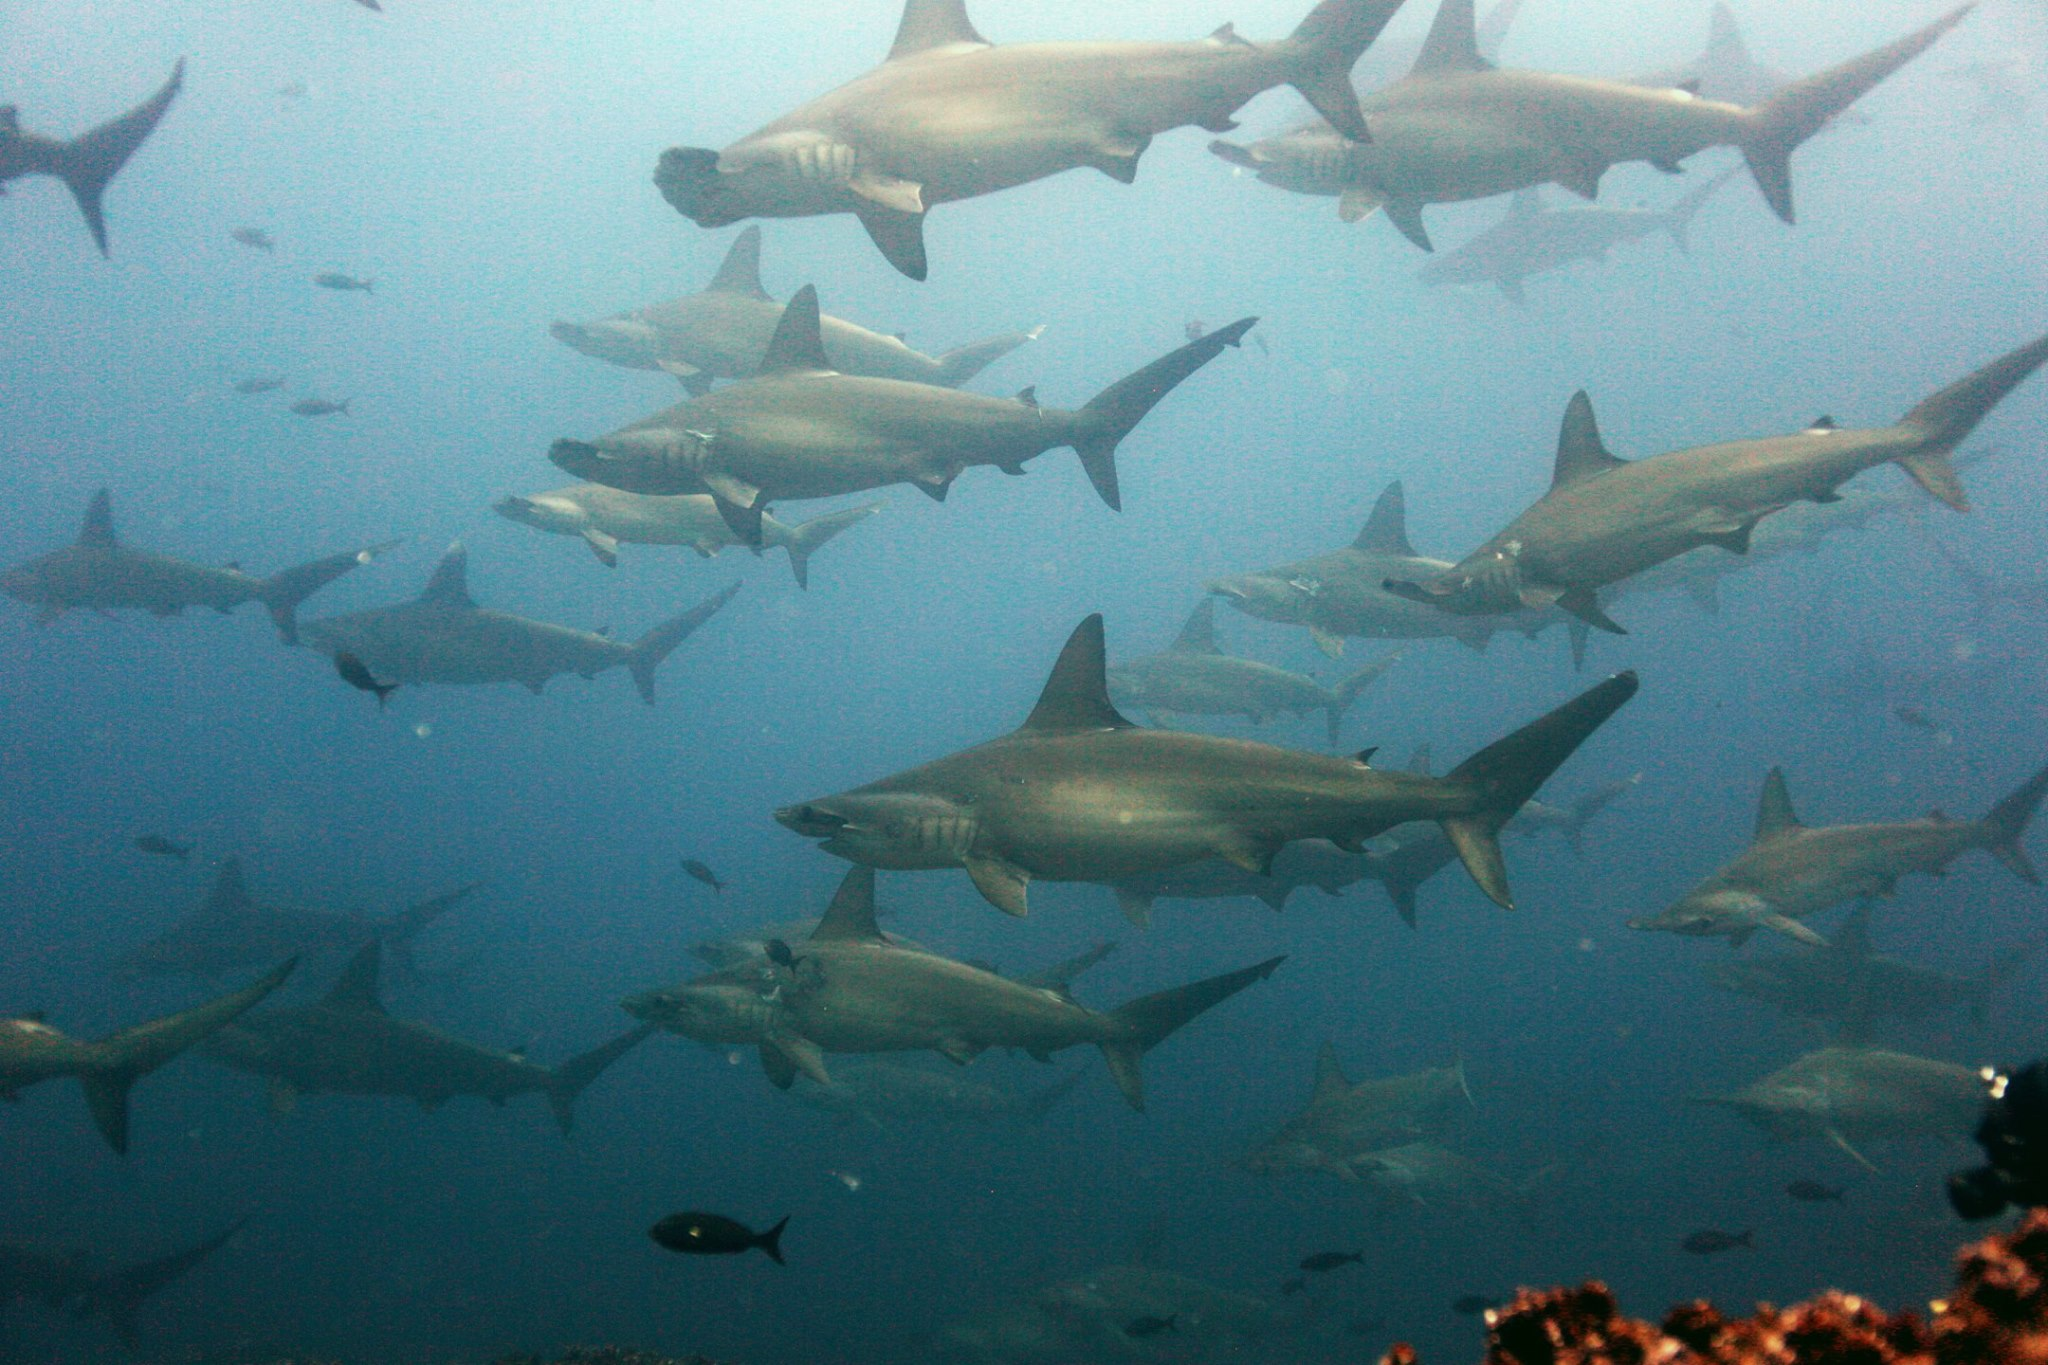 School of scalloped hammerhead sharks encountered by scientists during the research dives. Other species of sharks, pods of dolphins, manta rays, and curious moray eels were also present.